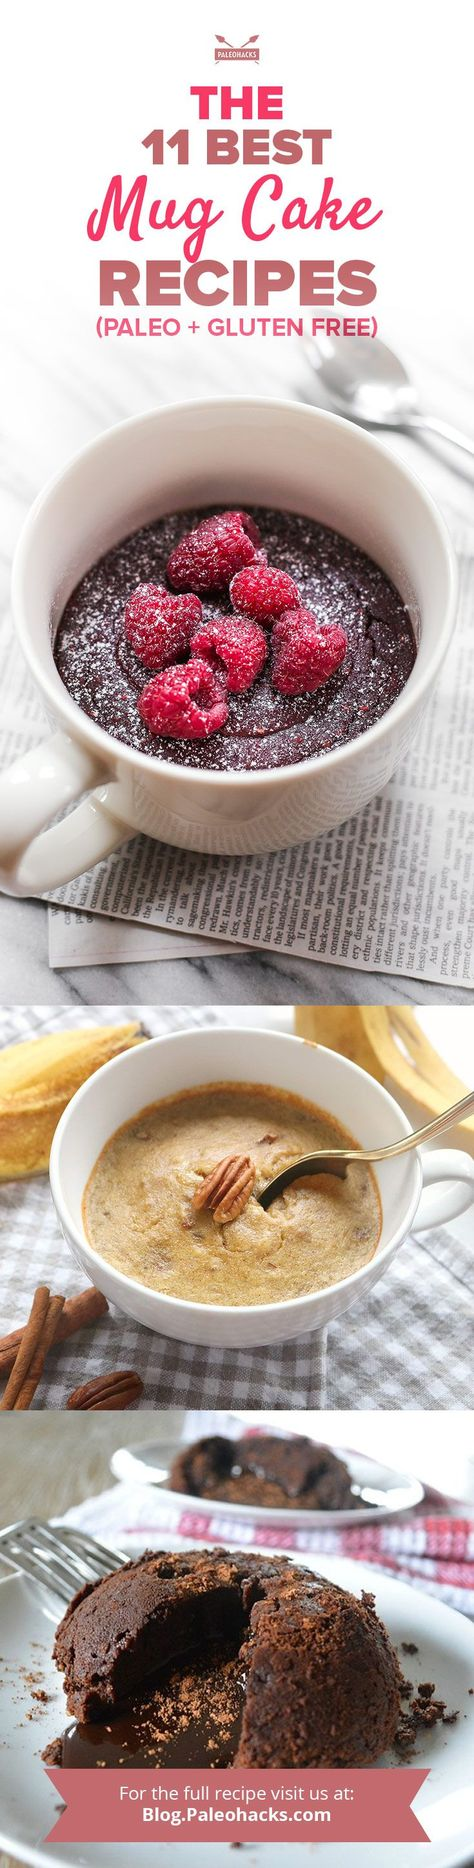 11 Gluten Free Mug Cake Recipes That Are Perfect For The